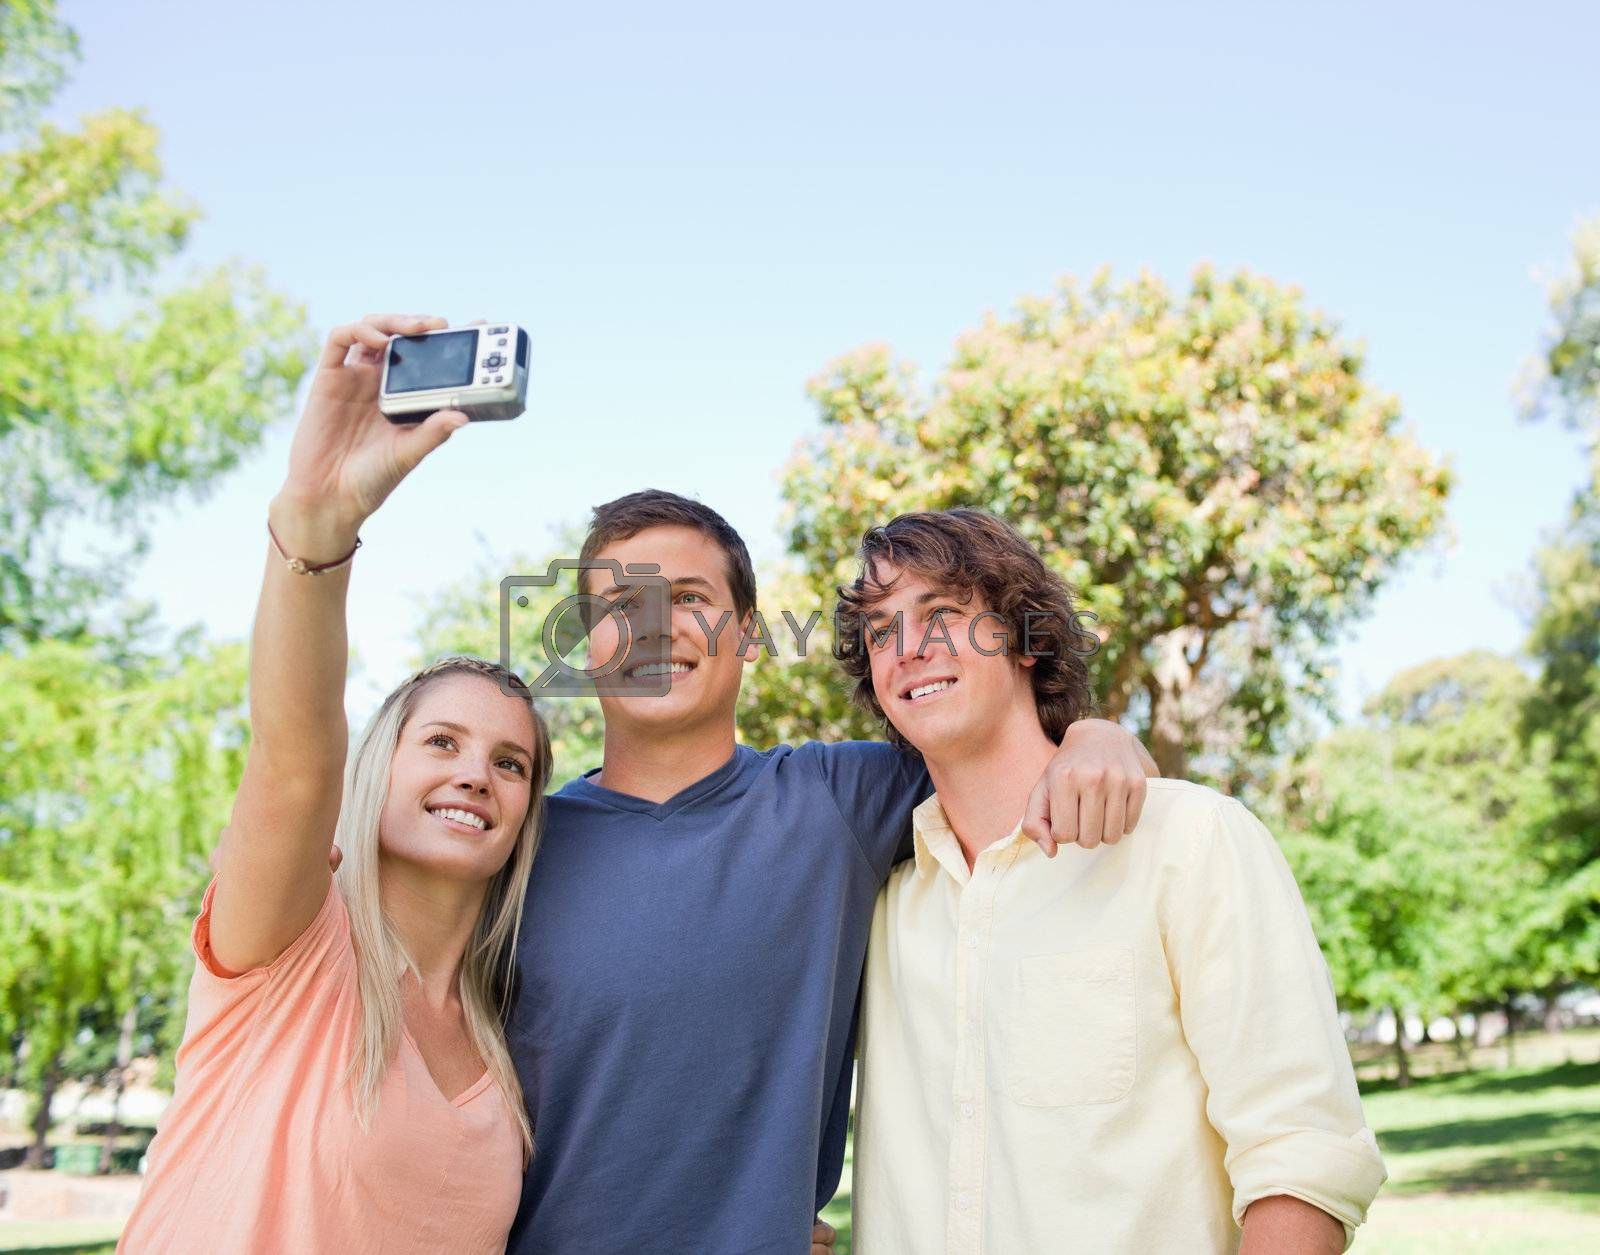 Close-up of three smiling students taking a pictures of themselves in a park